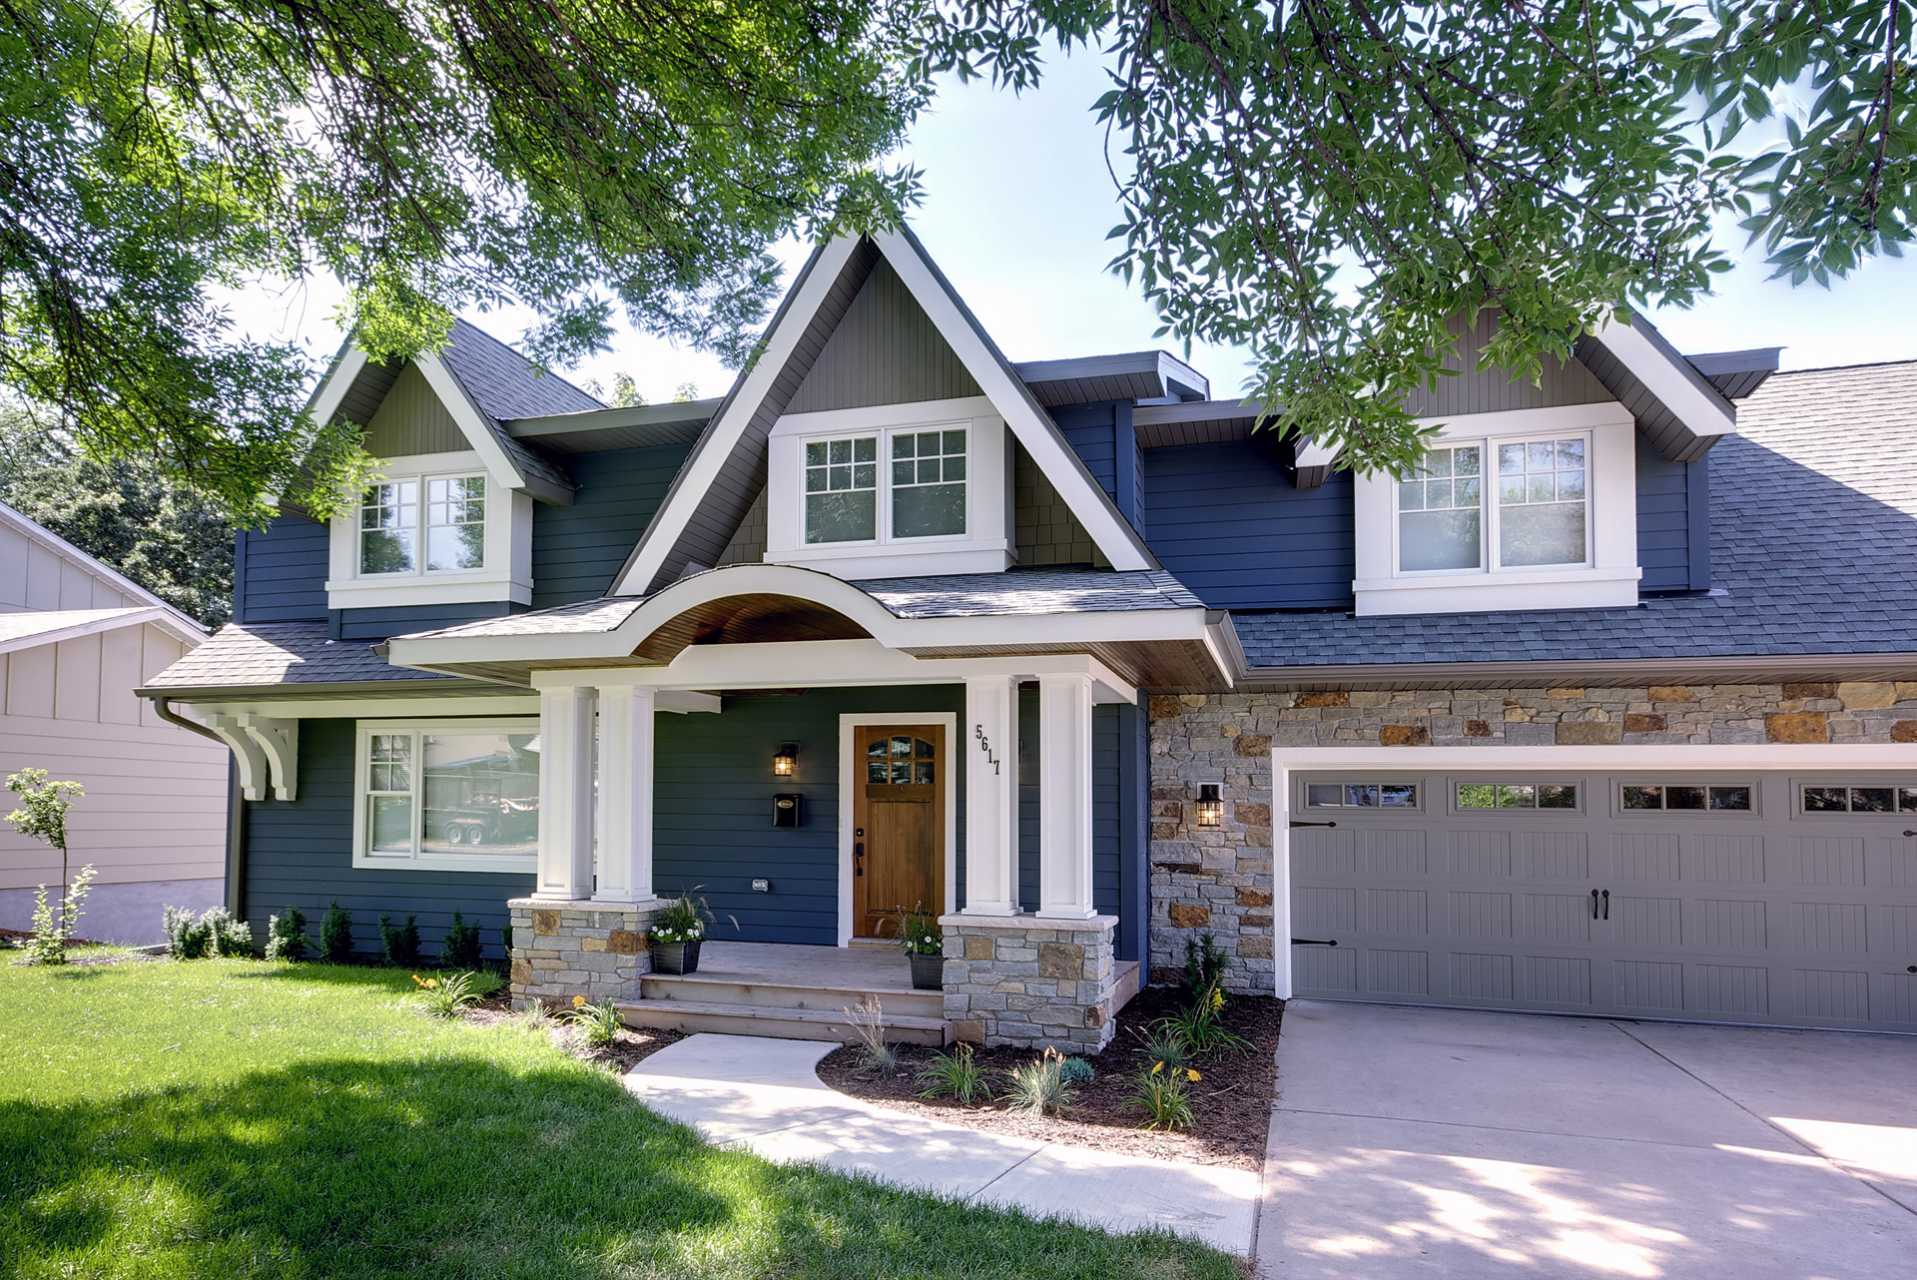 Exterior Paint Colors That Are Timeless -- Blue.jpg